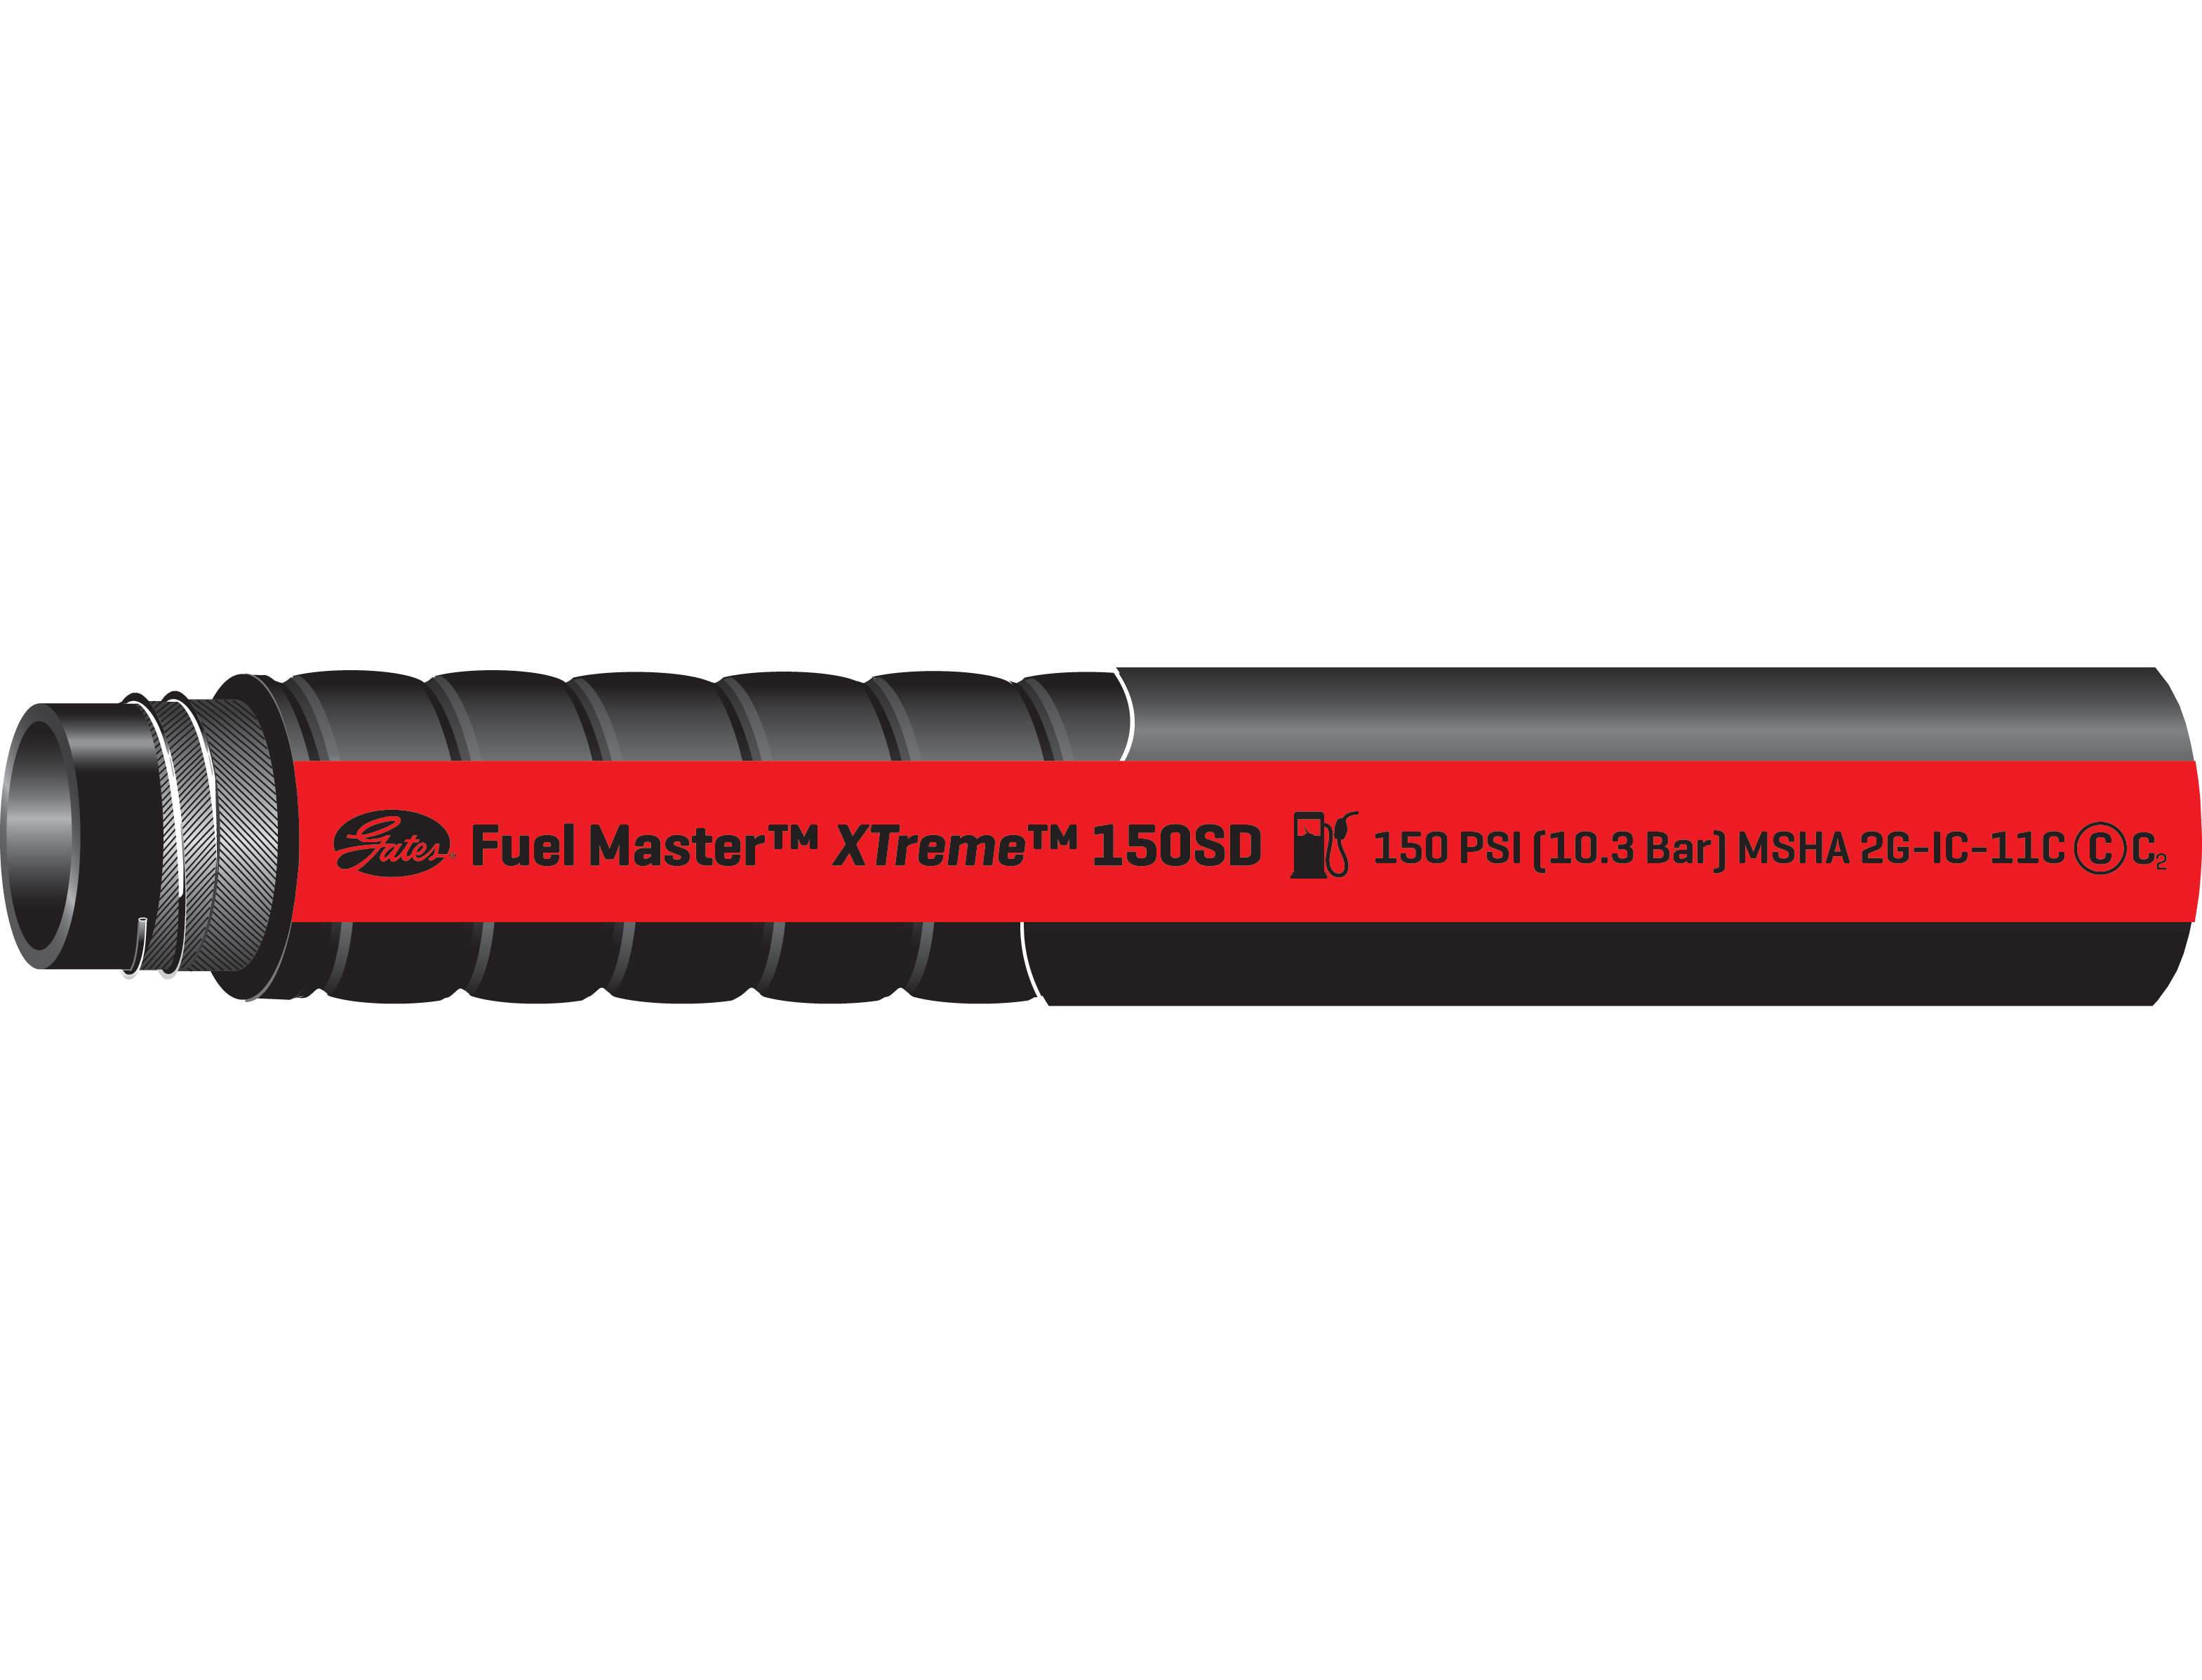 Fuel Master Xtreme 150SD Alternative Fuel Hose